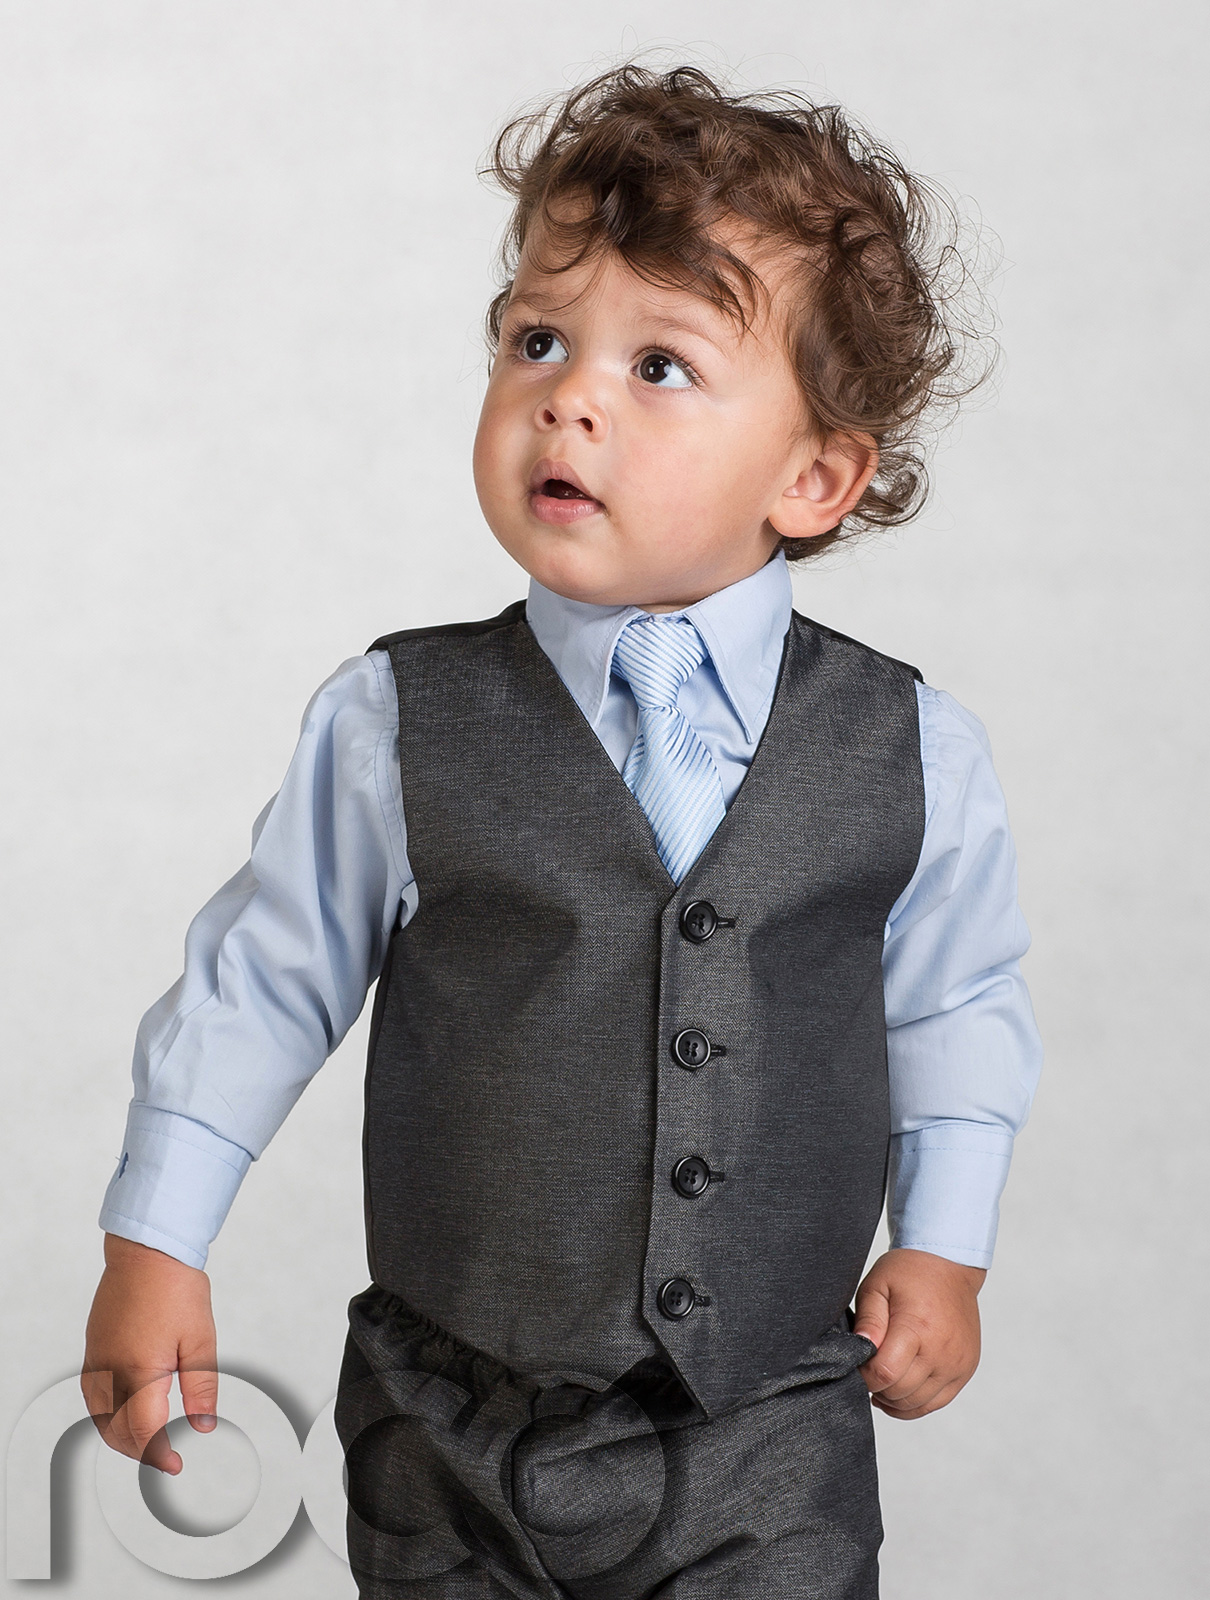 Baby Boy Bow Tie Outfits. Store availability. Search your store by entering zip code or city, state. Go. Sort. Best match We focused on the bestselling products customers like you want most in categories like Baby, Clothing, Electronics and Health & Beauty. Marketplace items (products not sold by urgut.ga).